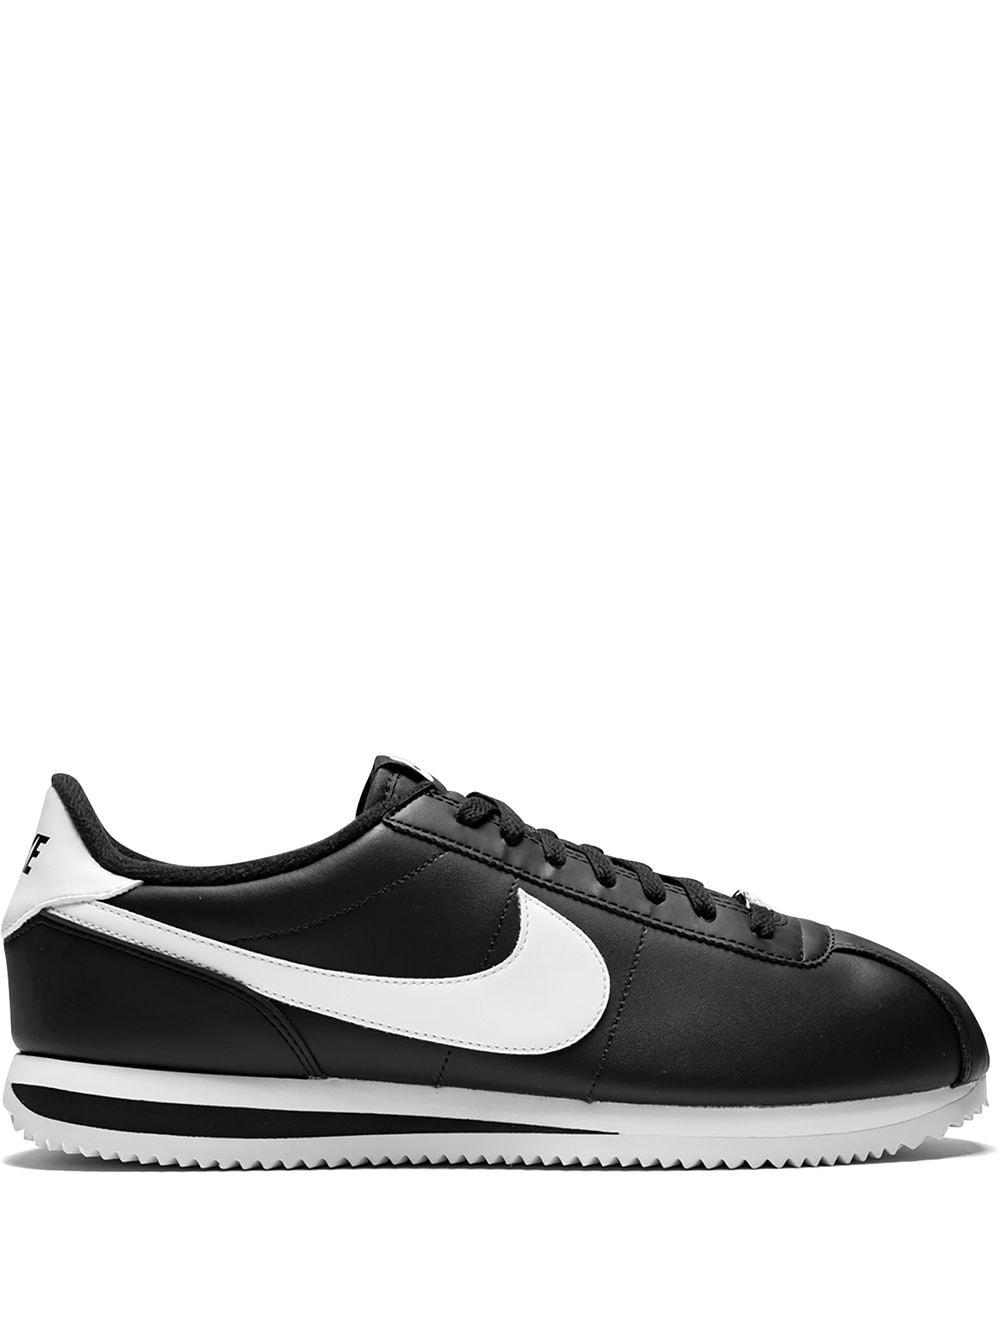 Nike Cortez Leather Trainers in Black for Men - Save 29% - Lyst